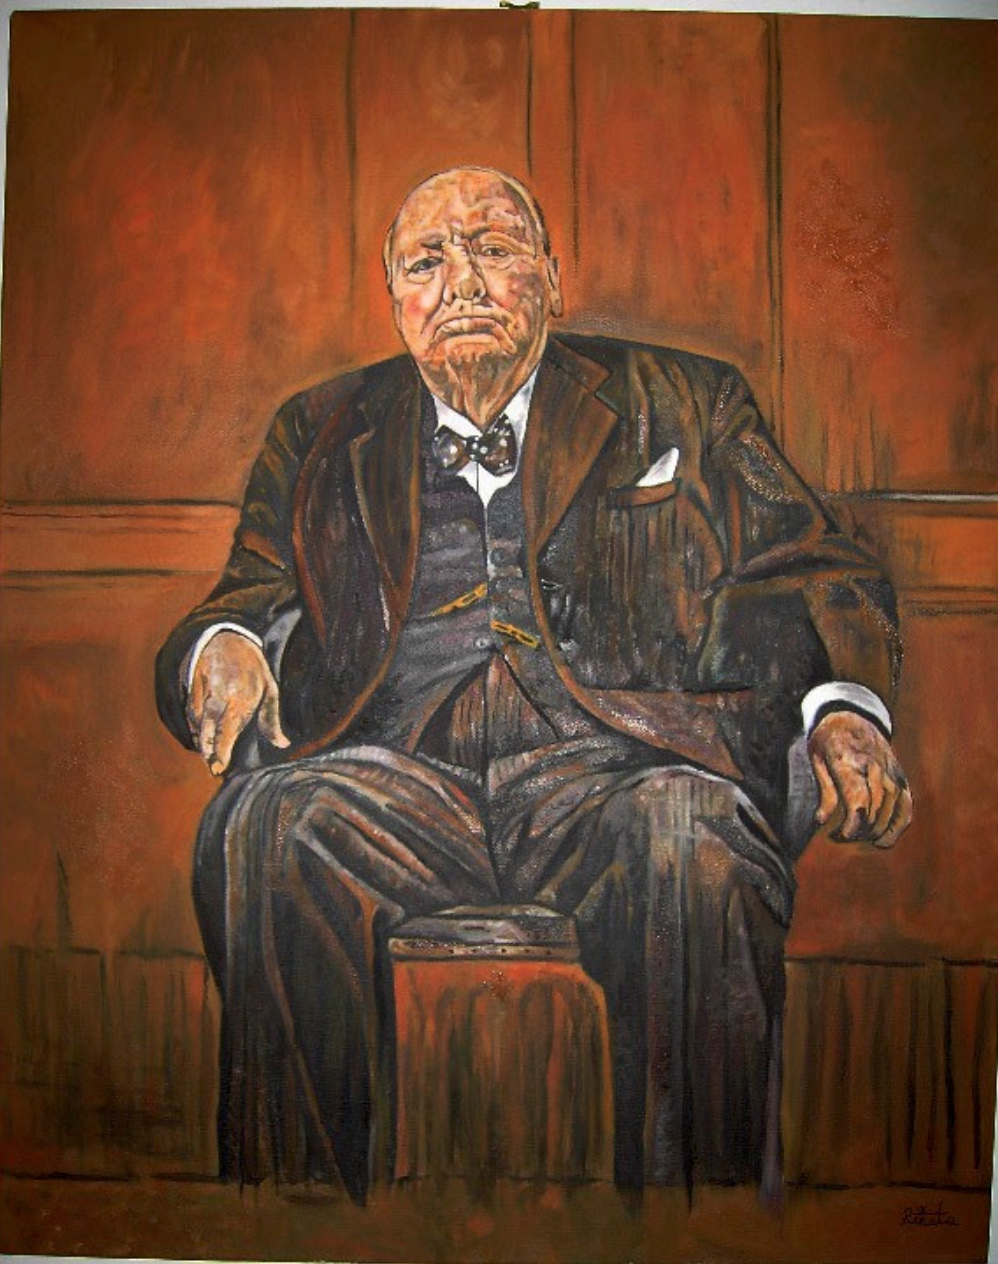 Graham Sutherland Winston Churchill : graham, sutherland, winston, churchill, Portraits:, Obama, Edition, Power